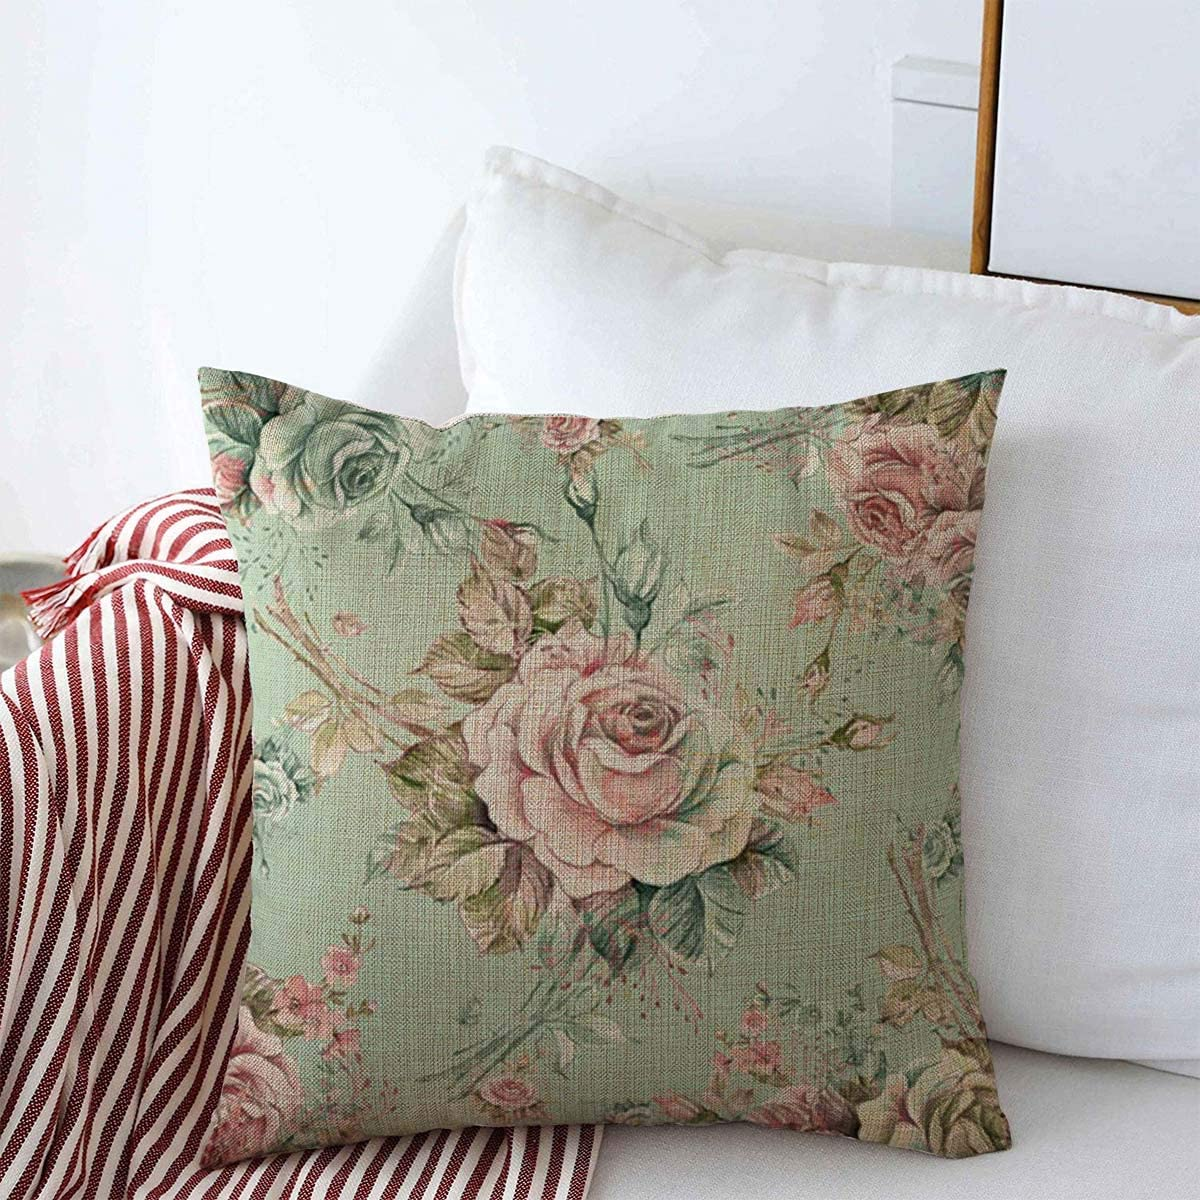 Amazon Com Pillow Case Flower Watercolor Roses Bud Nw Abstract Draw Pattern Pink Floral Vintage Victorian Baroque Drawing Farmhouse Decorative Throw Pillows Covers 18 X18 For Winter Decorations Home Kitchen